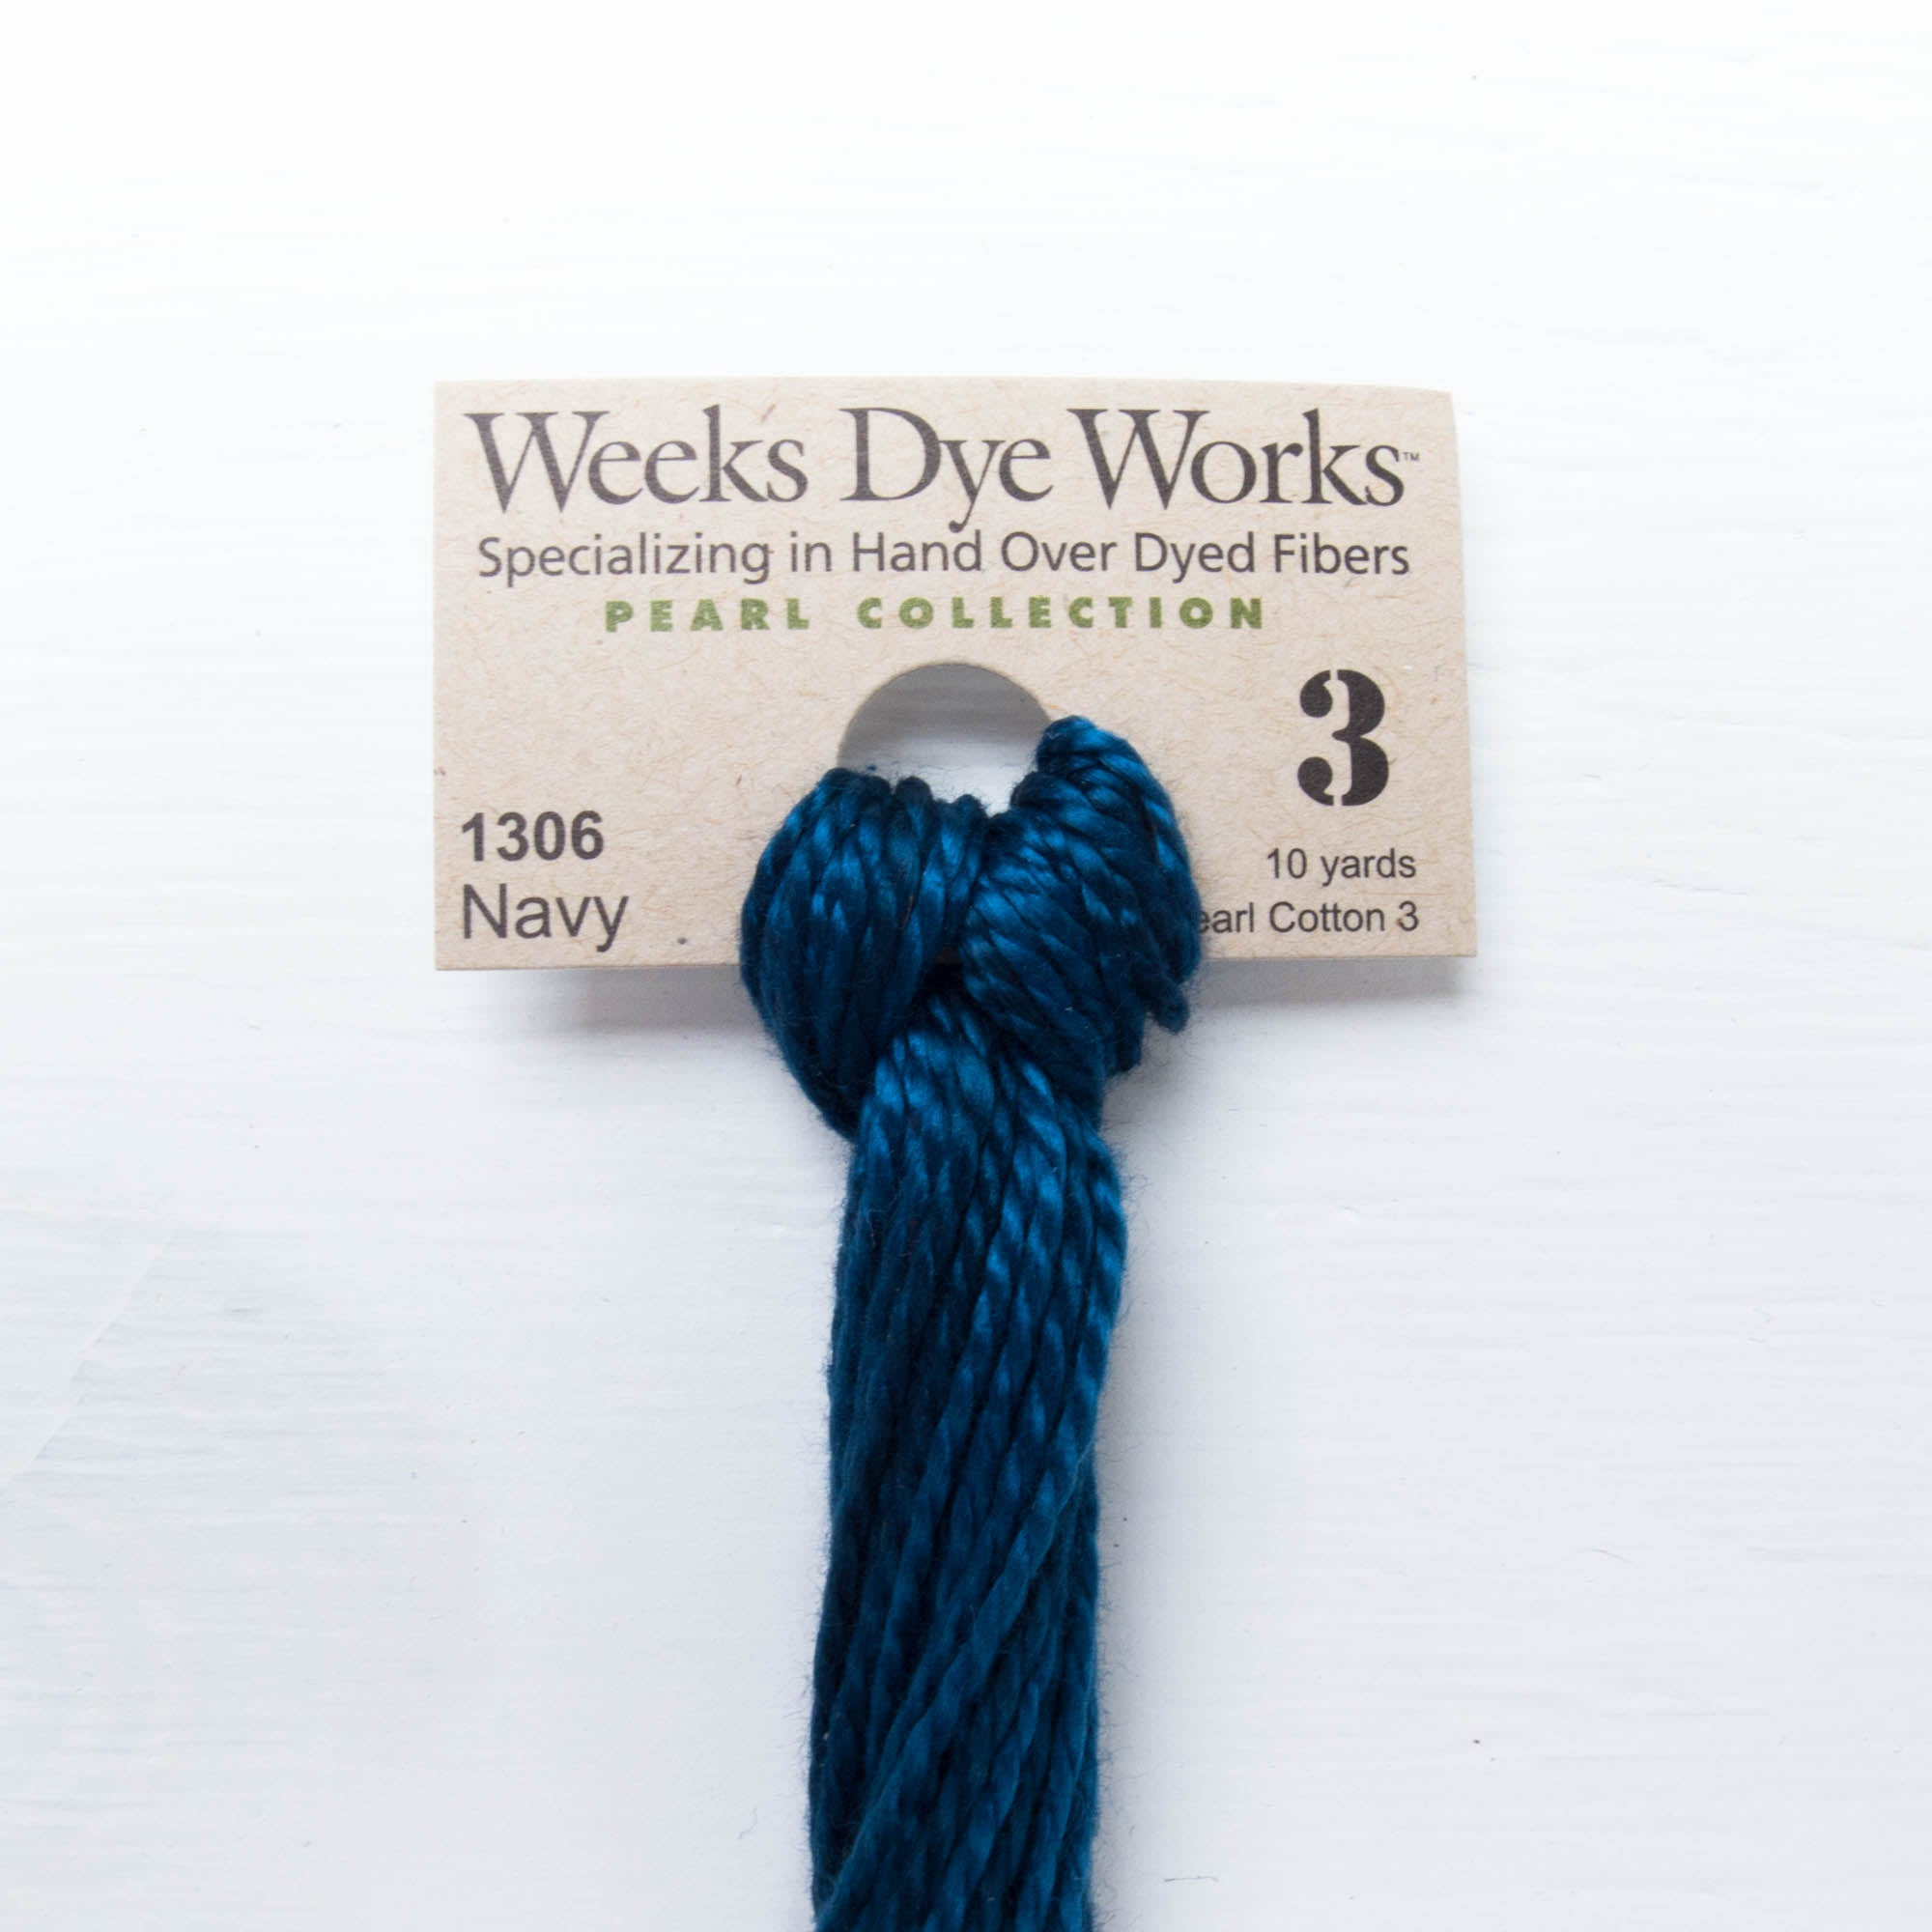 Size 3 Perle Cotton Thread - Weeks Dye Works Navy (1306) Perle Cotton - Snuggly Monkey